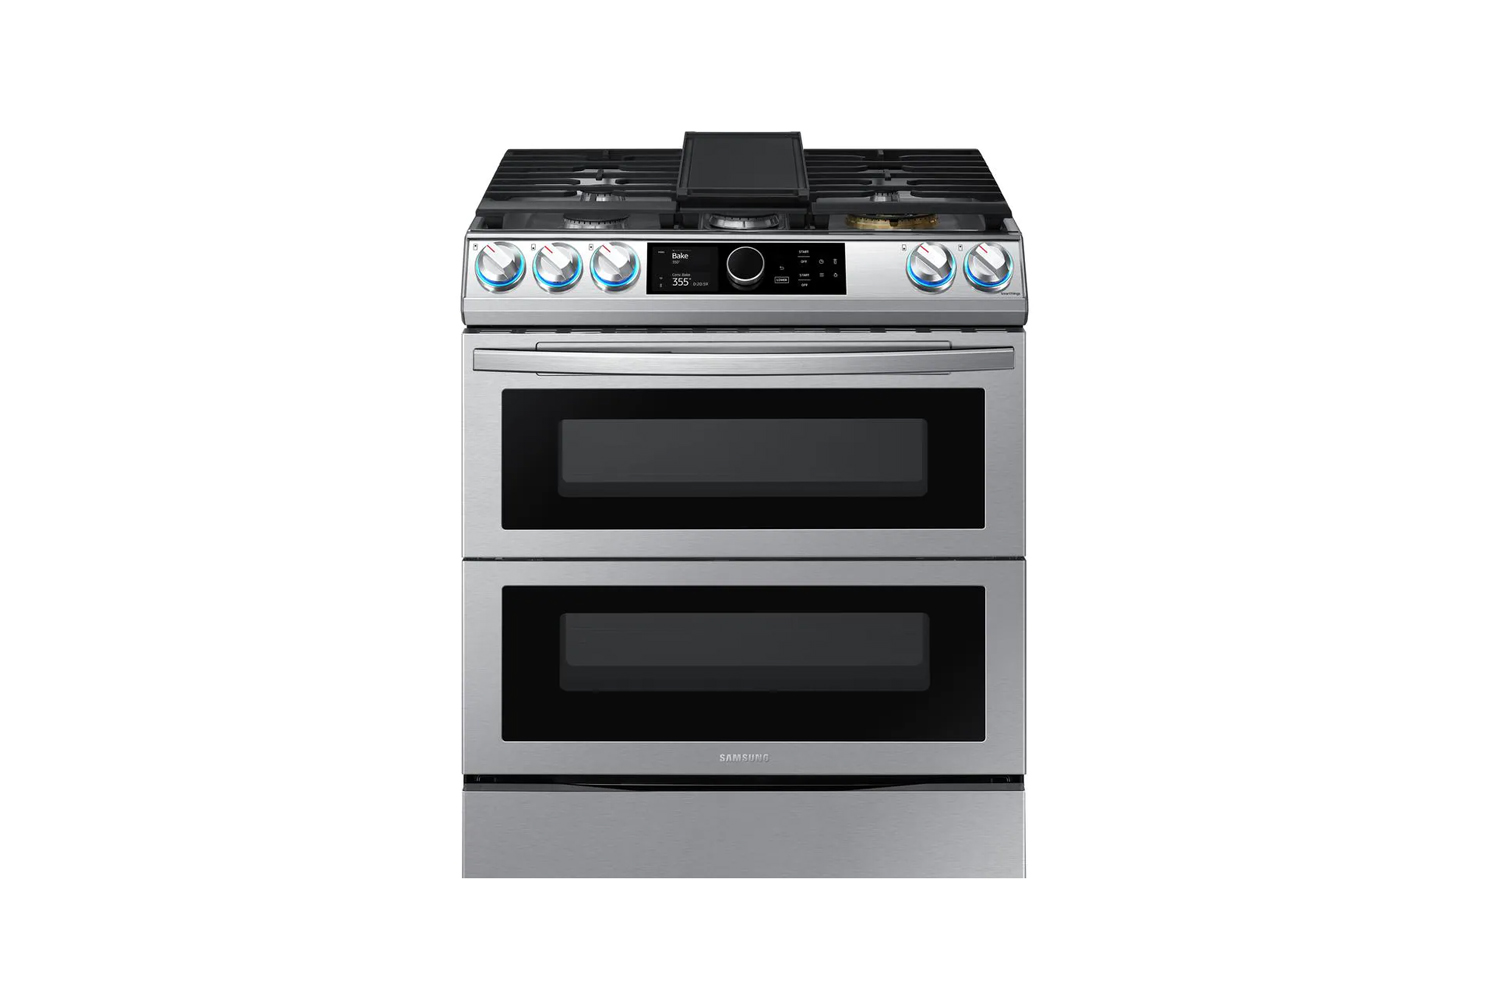 the samsung flex duo gas range stainless steel is \$\2,788 at the home depot. 18